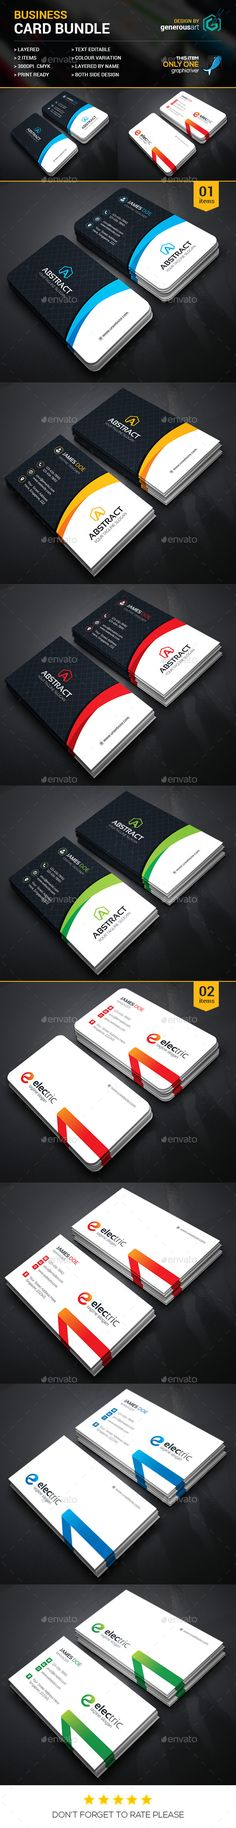 Business Card Bundle 2 in 1_11